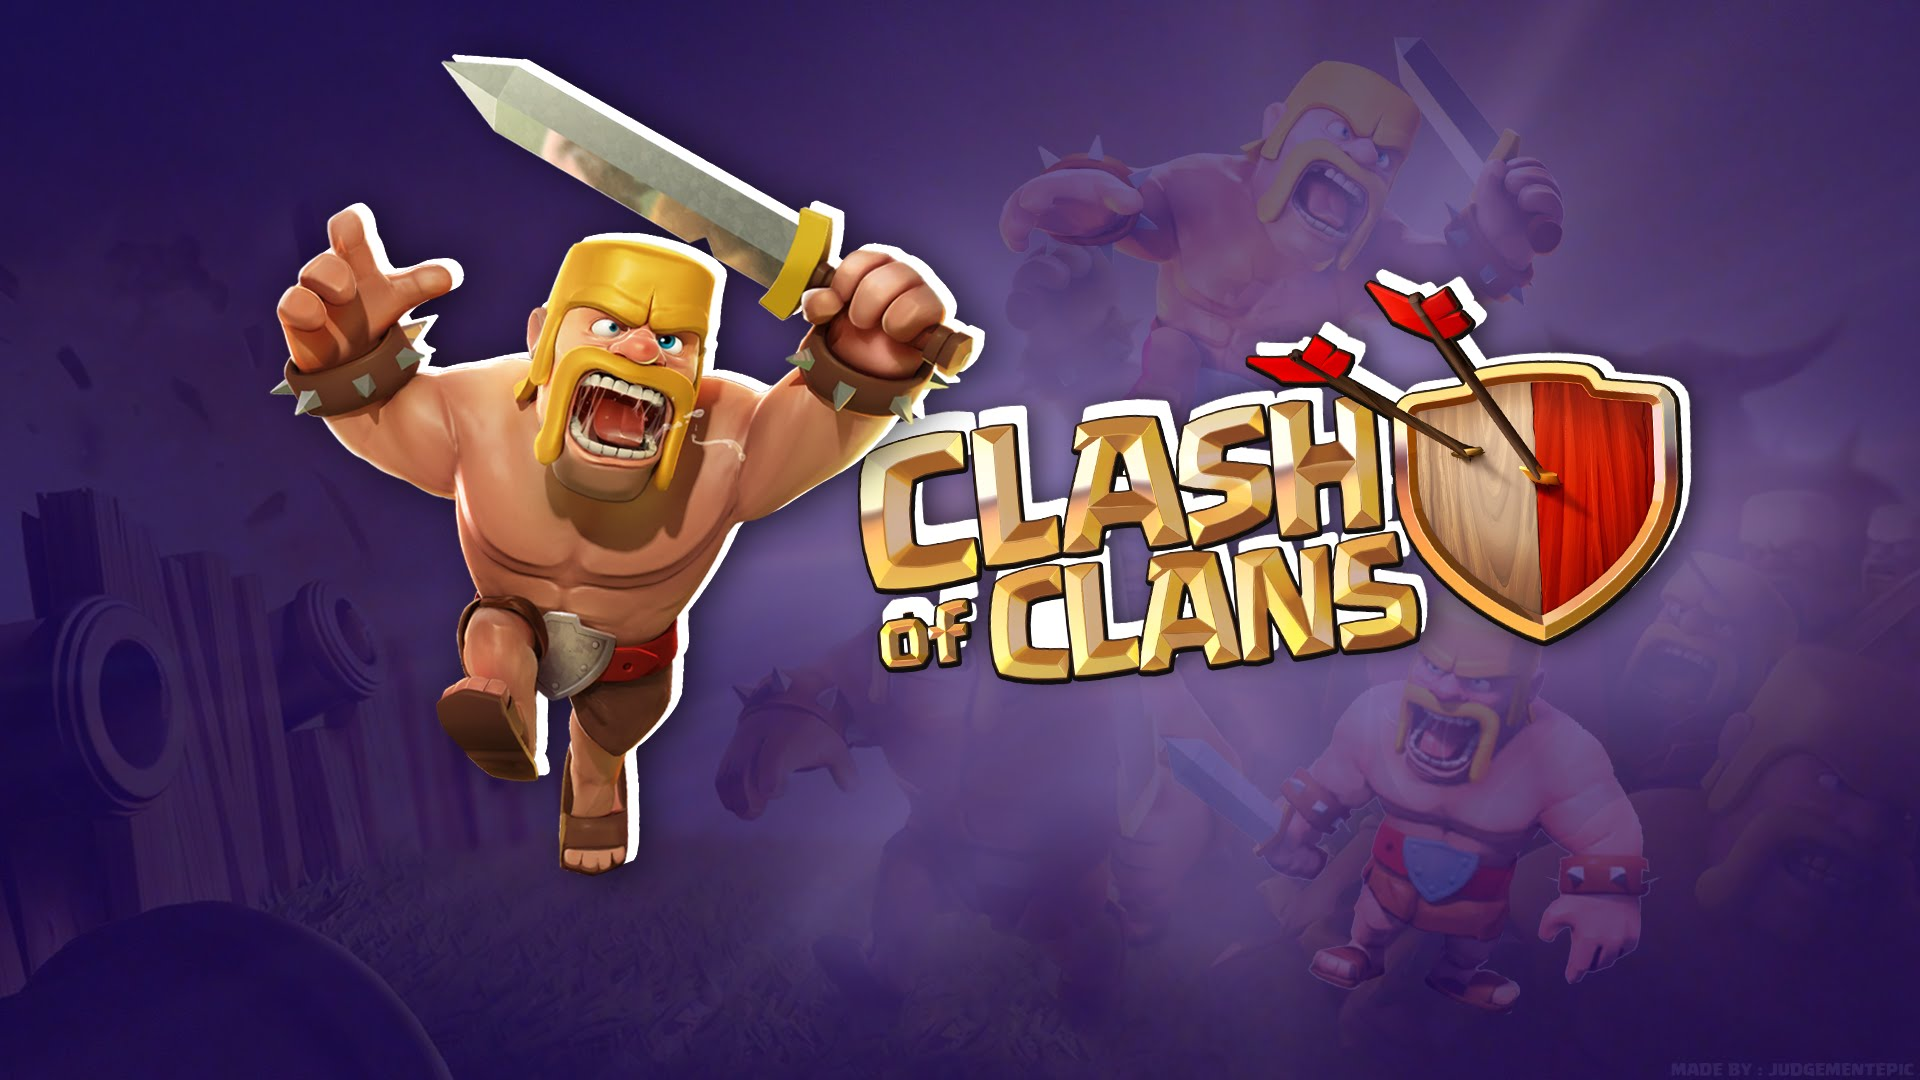 of clans wallpaper - photo #5